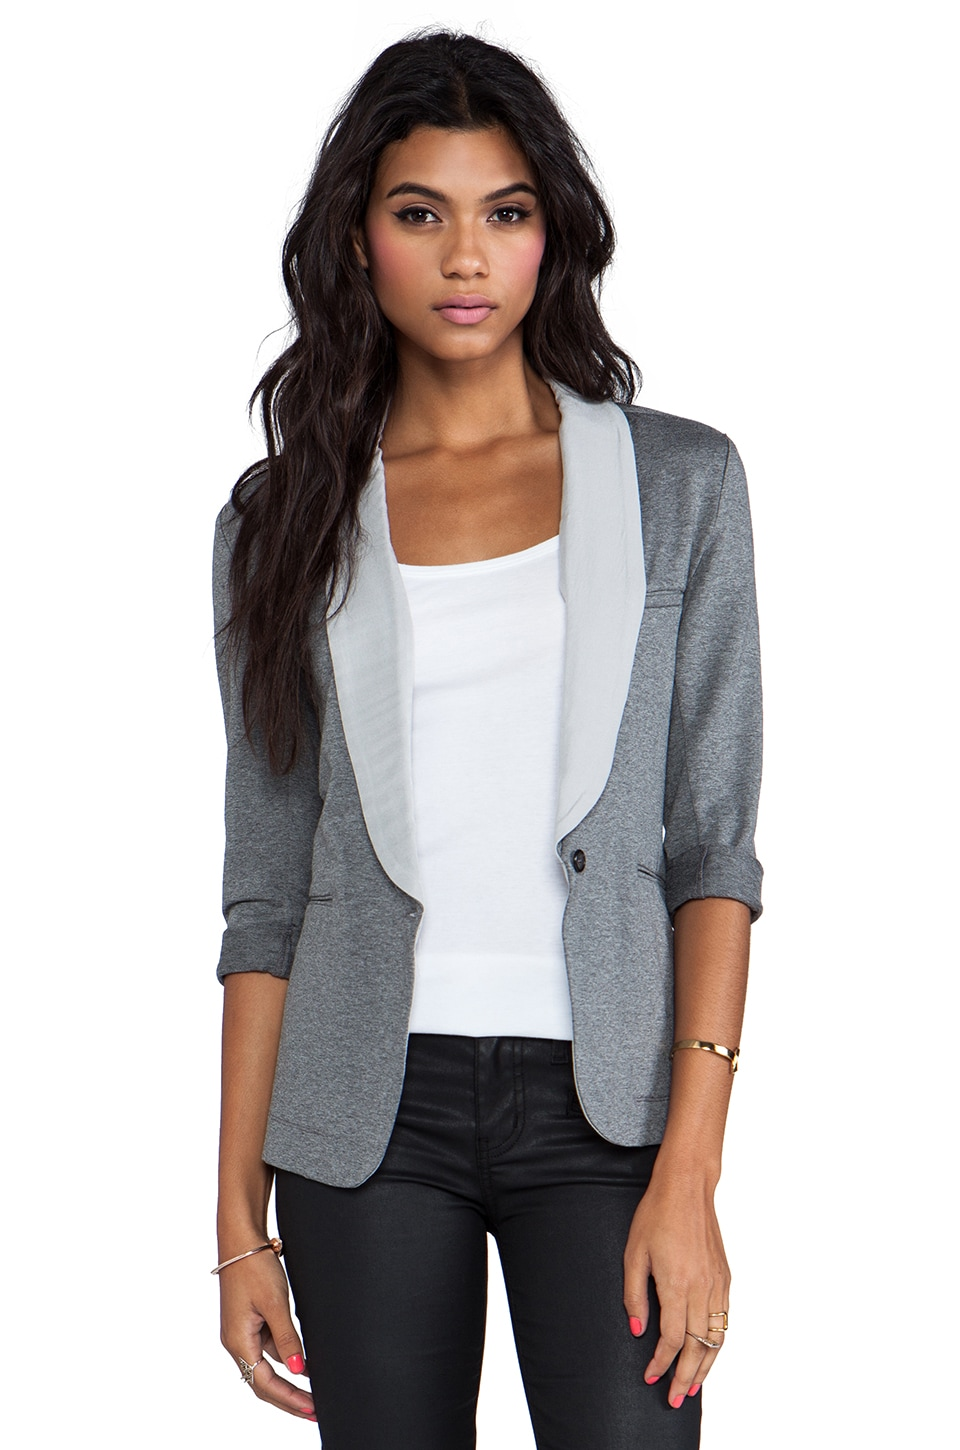 Soft Joie Neville B Blazer in Dark Heather Grey